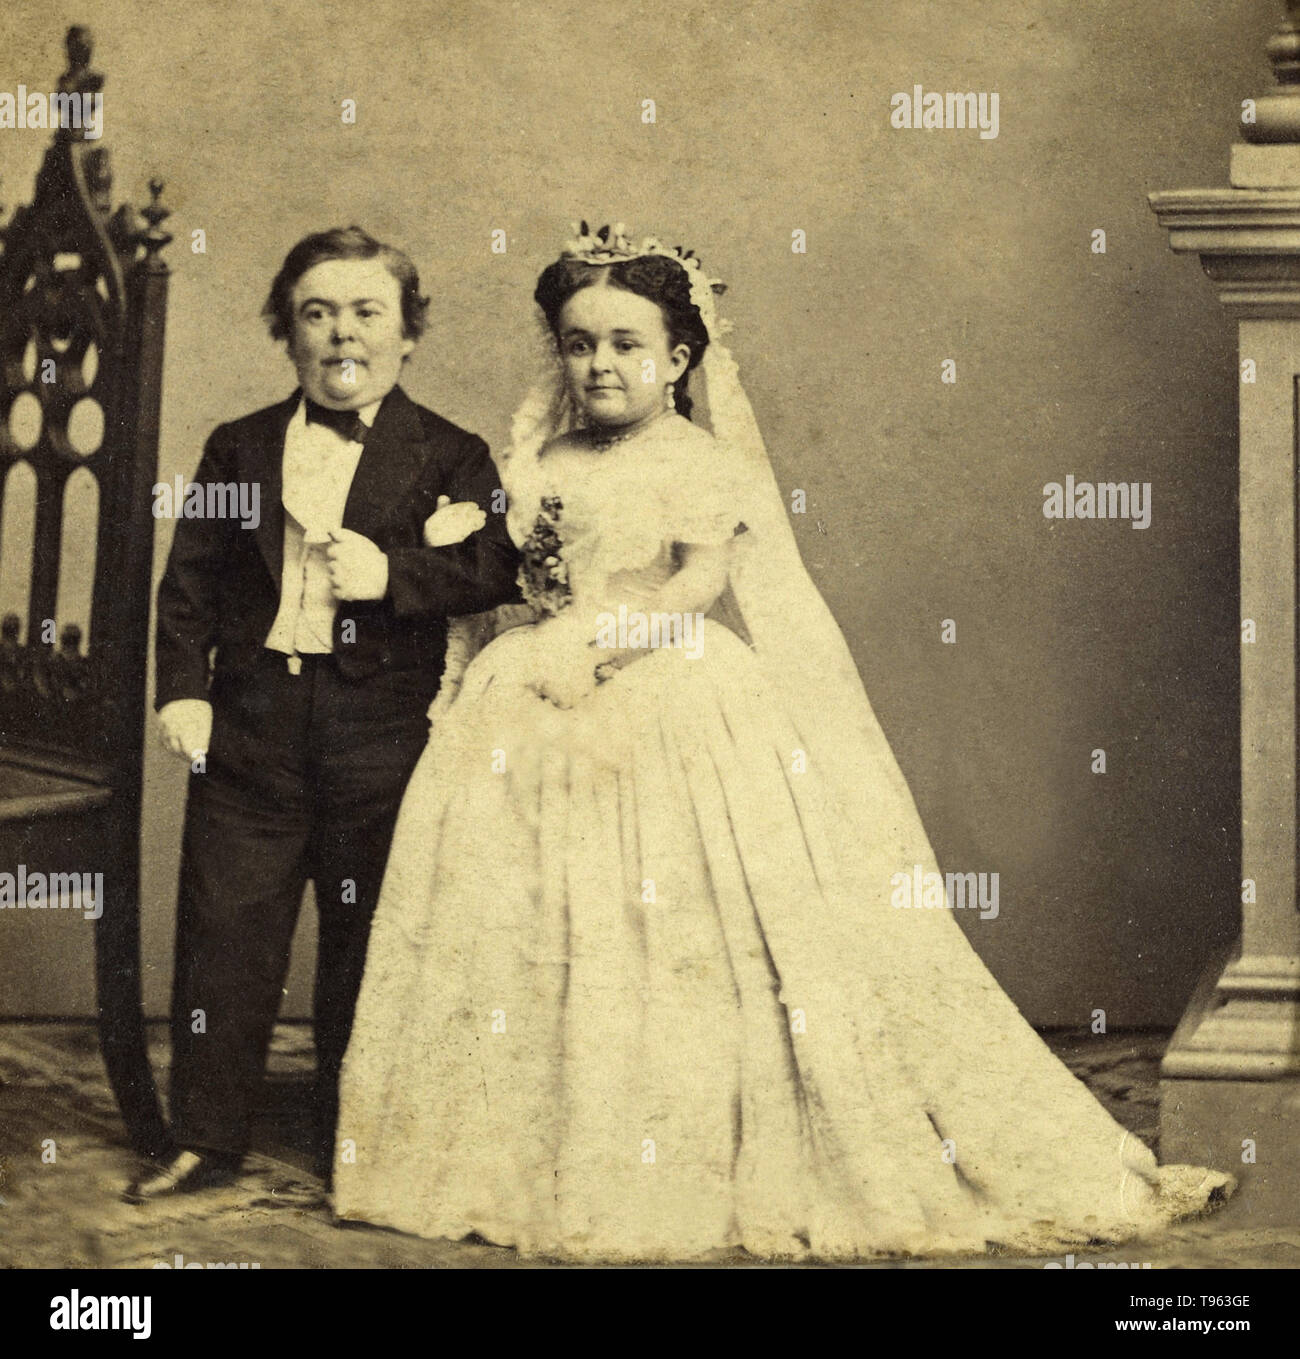 Wedding portrait of 'General Tom Thumb' and Lavinia Warren, 1863. Charles Dauvois (French, active 1860s). Charles Sherwood Stratton (1838-1883), 'General Tom Thumb,' was an American dwarf performer. P.T. Barnum, a distant relative, taught the boy how to sing, dance, mime, and impersonate famous people. Barnum took young Stratton on a tour of Europe, making him an international celebrity. He later became Barnum's business partner. His marriage with a little person, Lavinia Warren (1842-1919), was front-page news. Following the wedding, the couple was received by President Lincoln at the White H - Stock Image